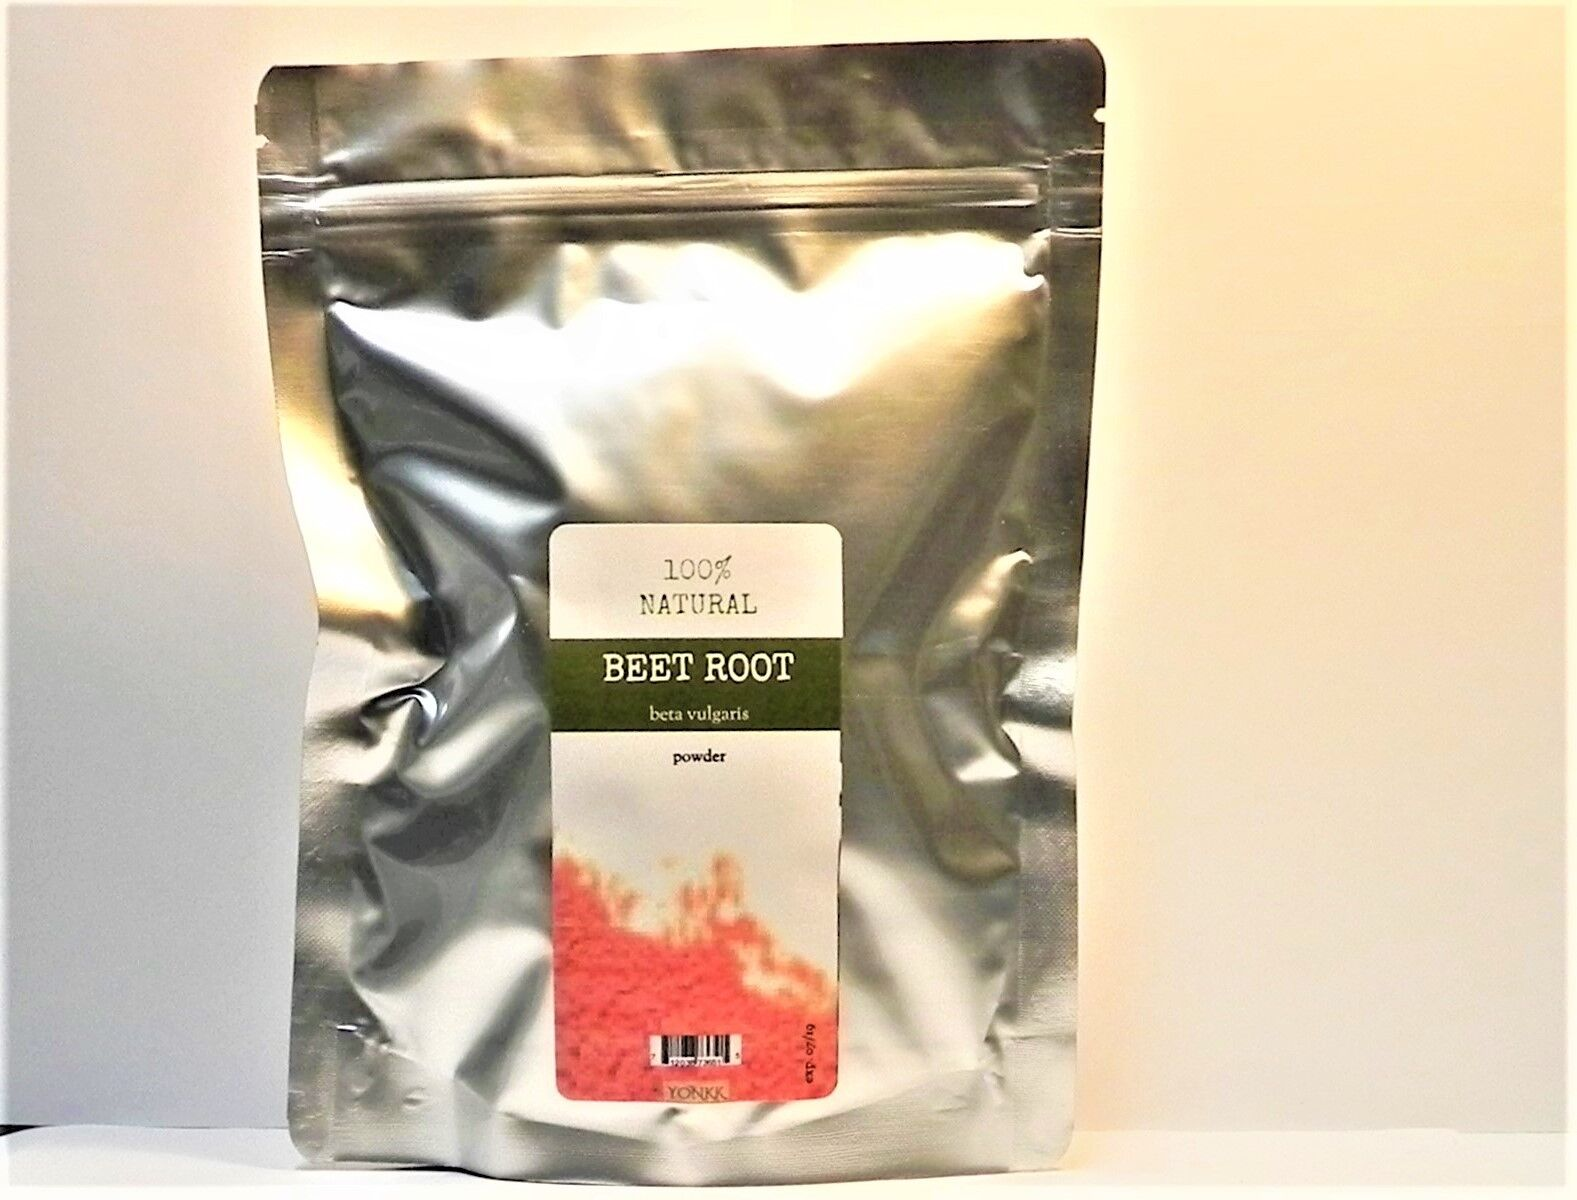 Beet Root Powder 1 2 4 5 6 8 10 12 14 16 oz  ounce UP TO 10